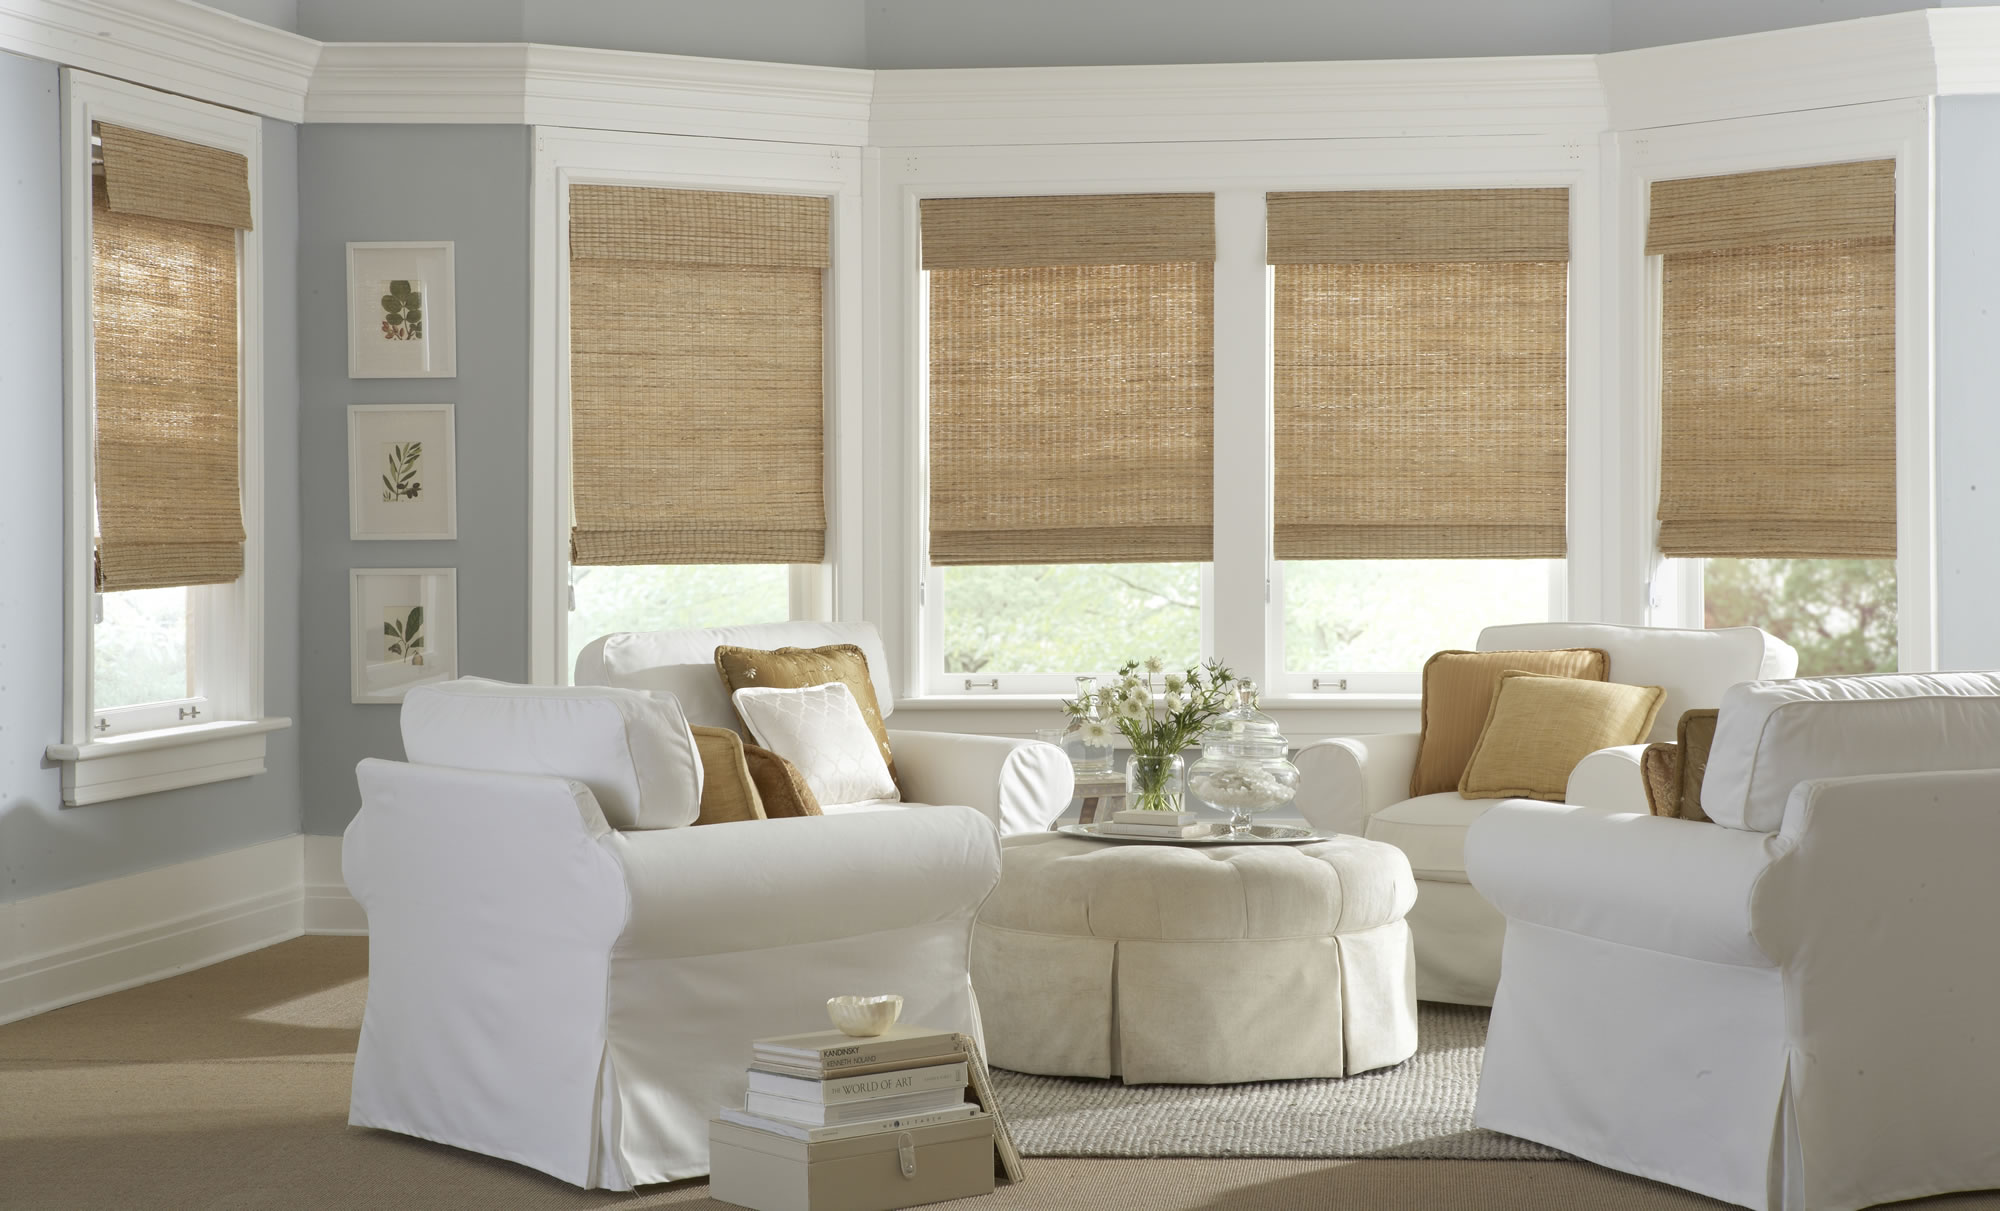 Window Blind - 5 Amazing Benefits of Using Window Blinds | HGNV.COM